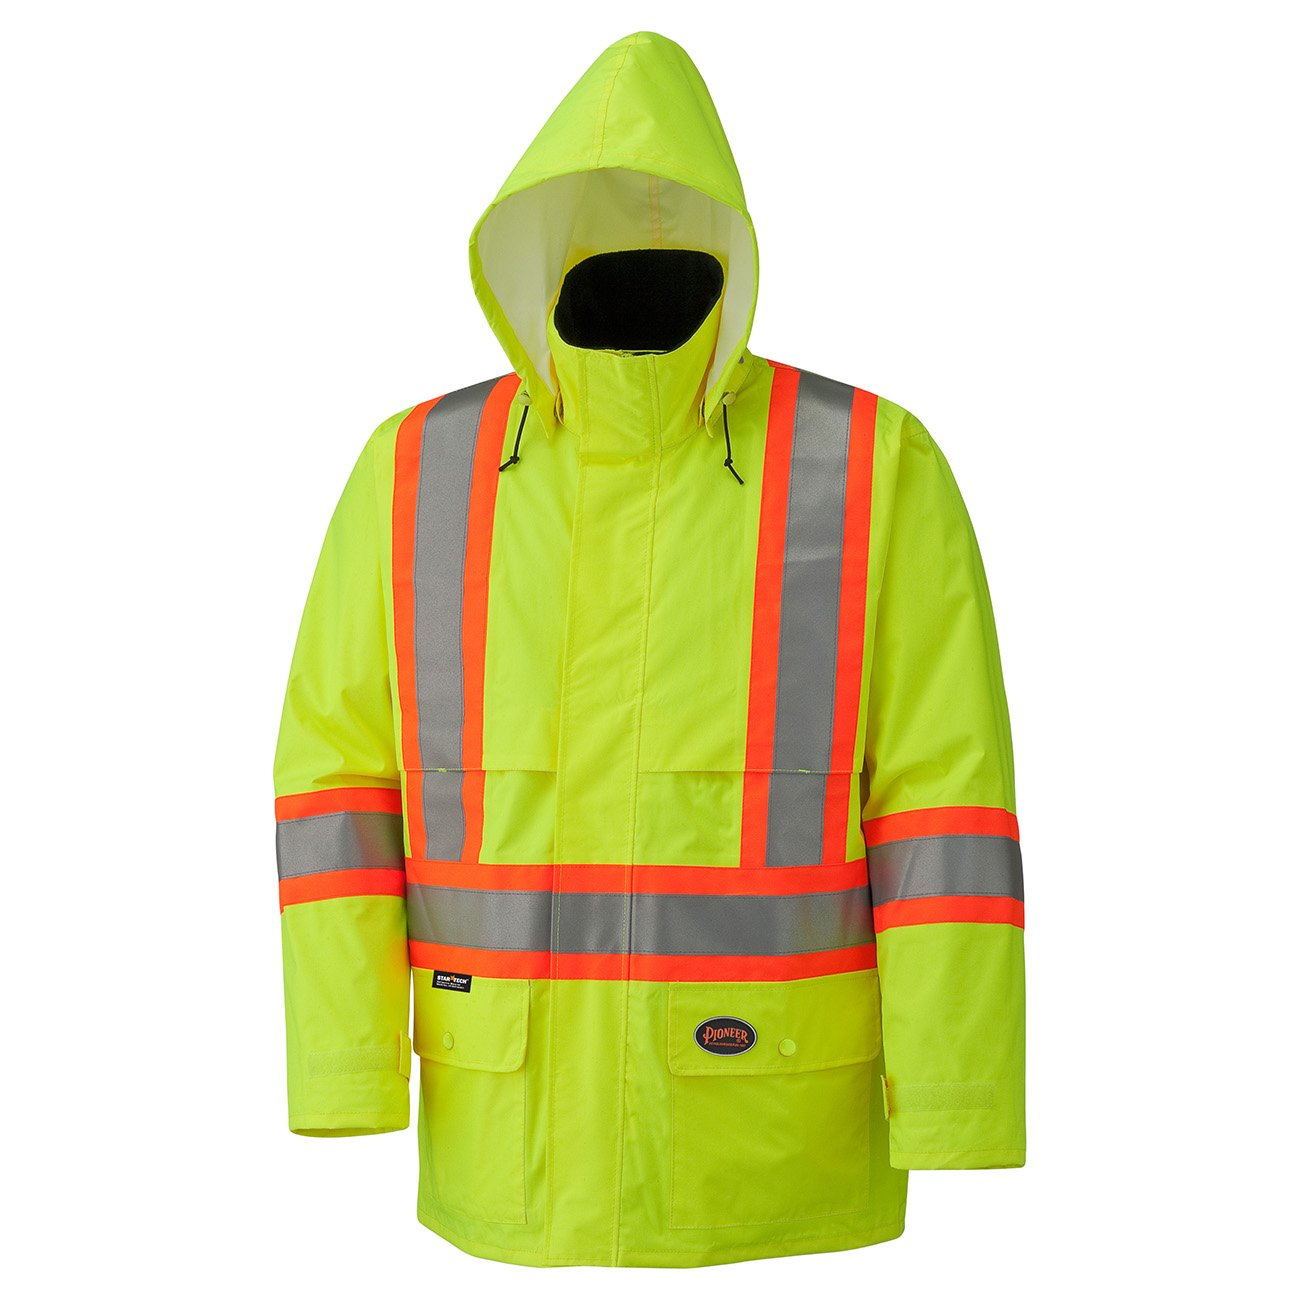 Pioneer Hi-Viz 150D Lightweight Waterproof Safety Jacket